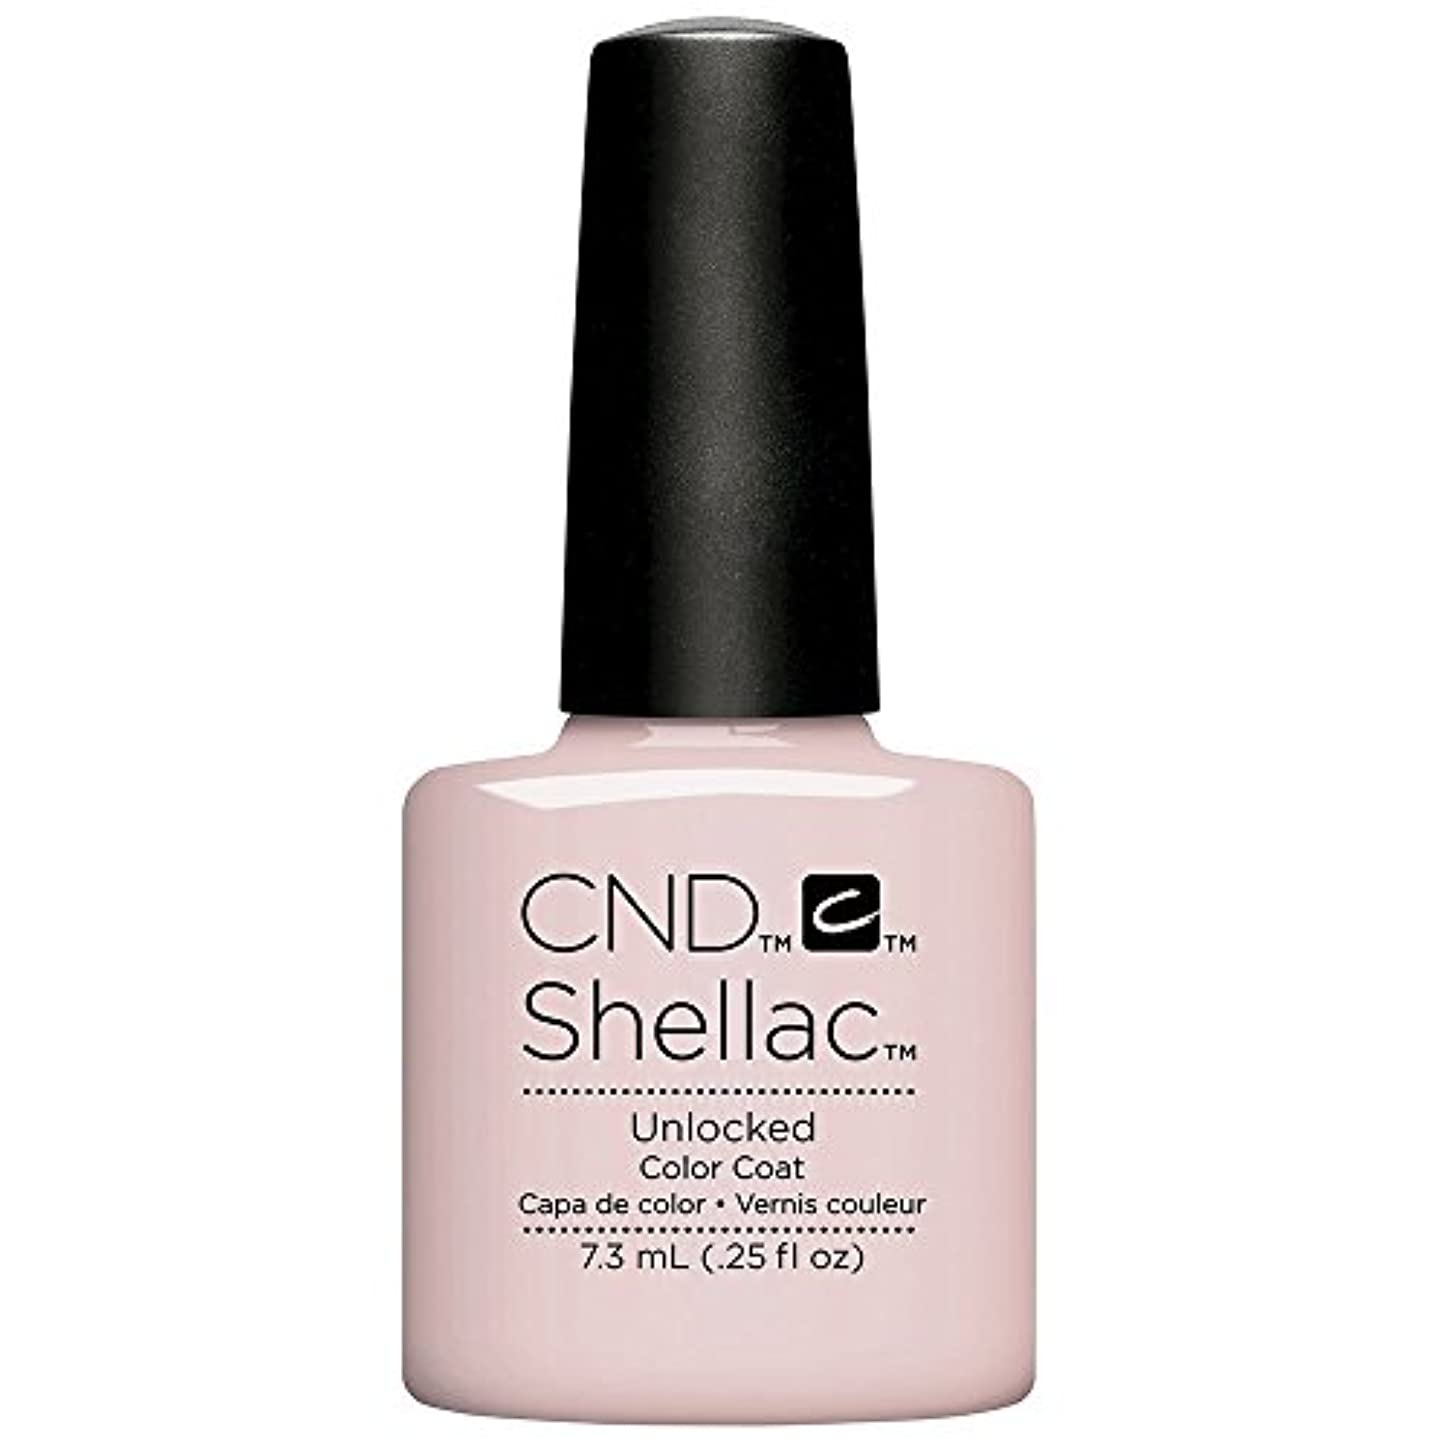 CND Shellac - The Nude Collection 2017 - Unlocked - 7.3 mL / 0.25 oz